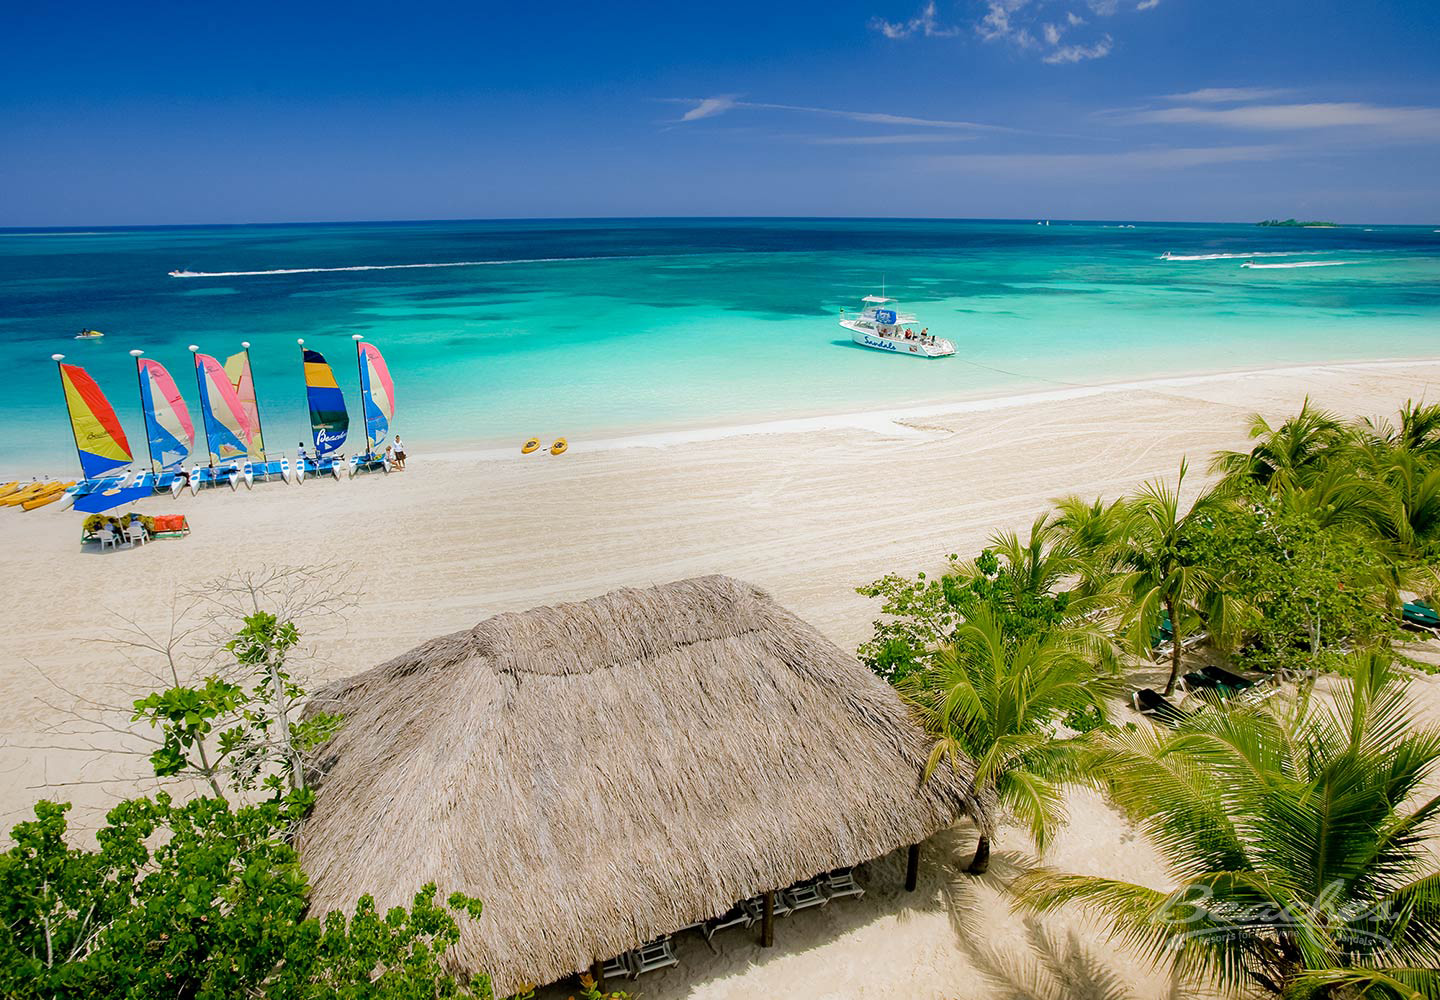 Travel Agency All-Inclusive Resort Beaches Negril 011